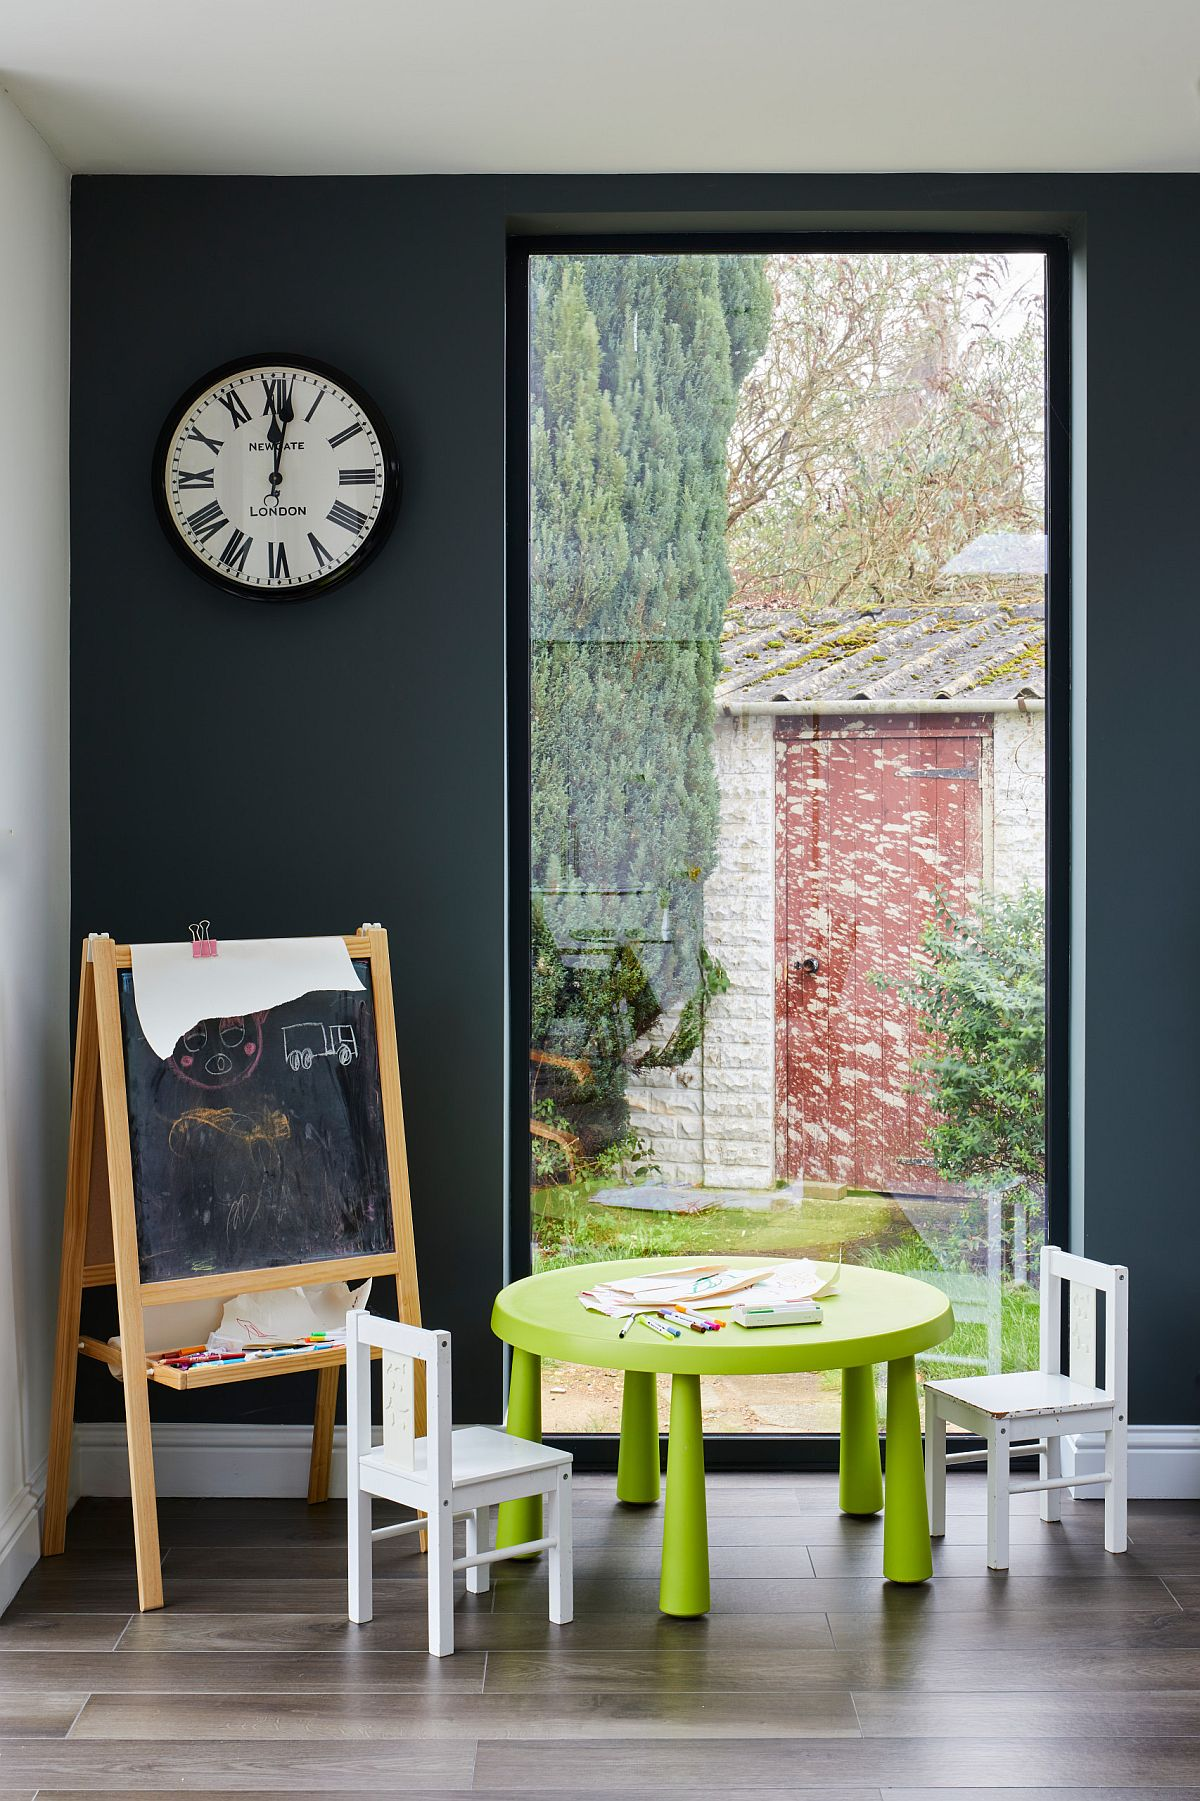 Turn-any-corner-in-the-kids-bedroom-or-nuresry-into-playarea-with-custom-decor-and-a-small-blackboard-77217